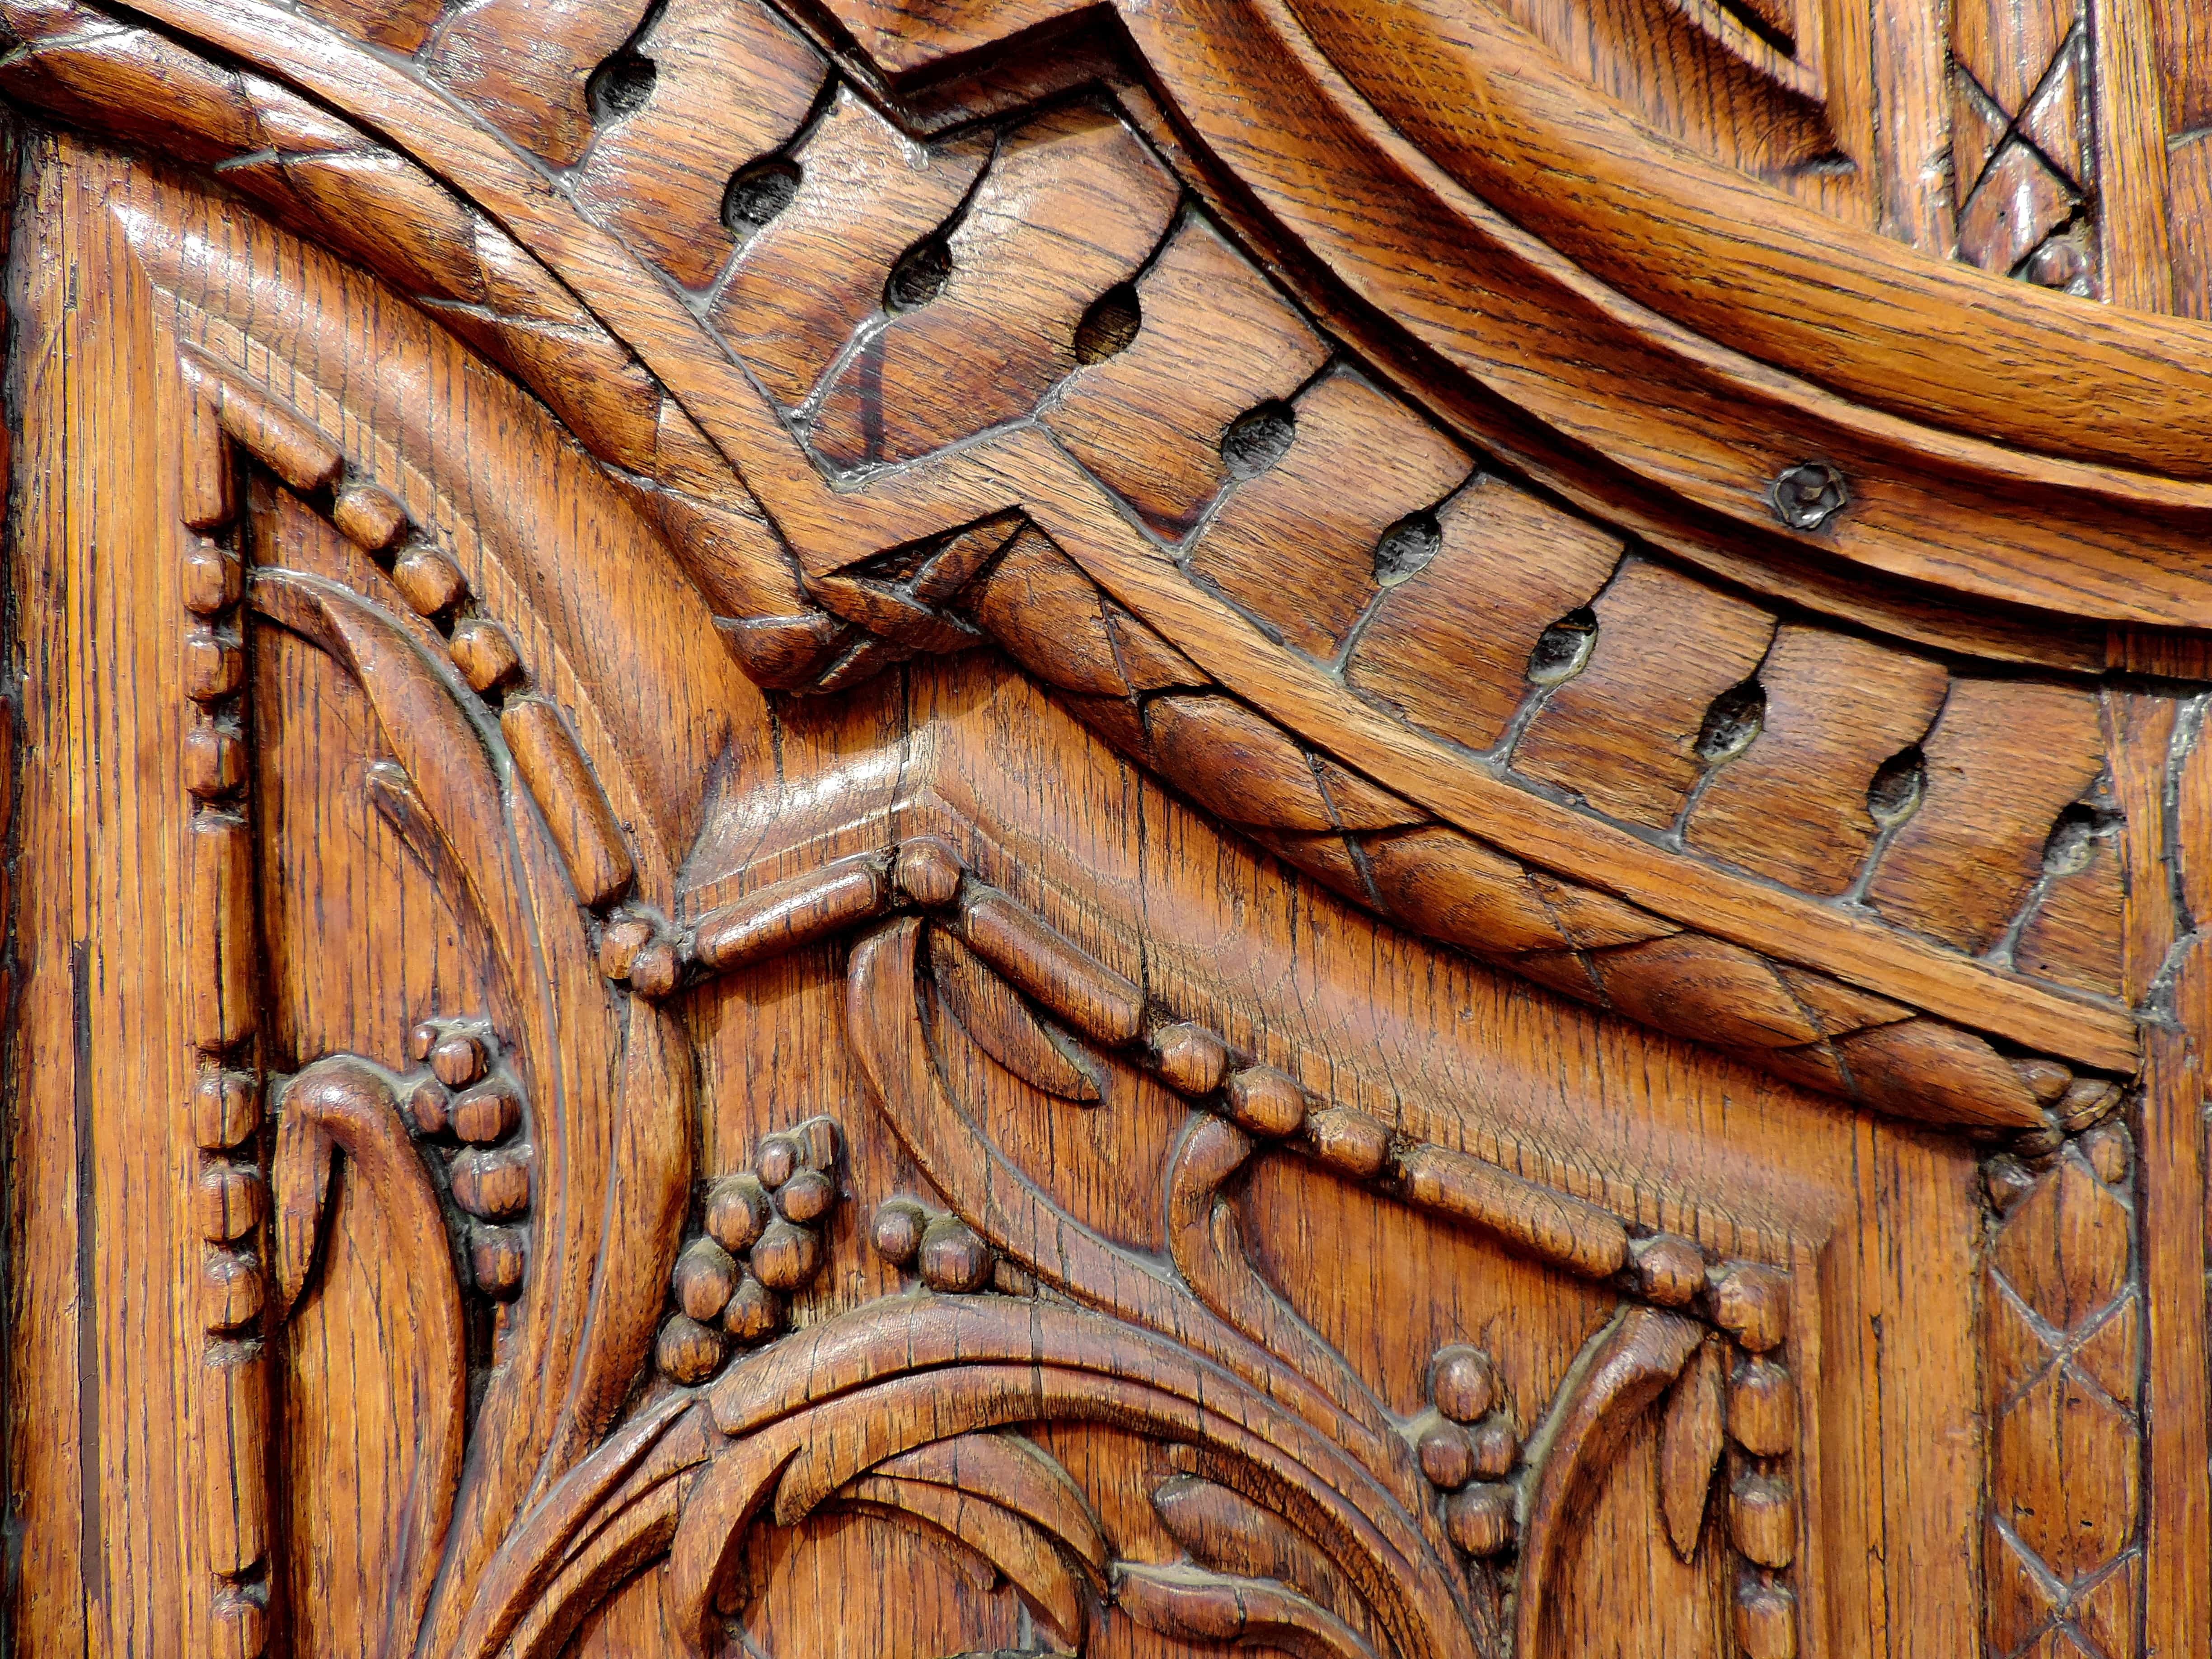 Free picture handmade ornament teak wood carving wood old